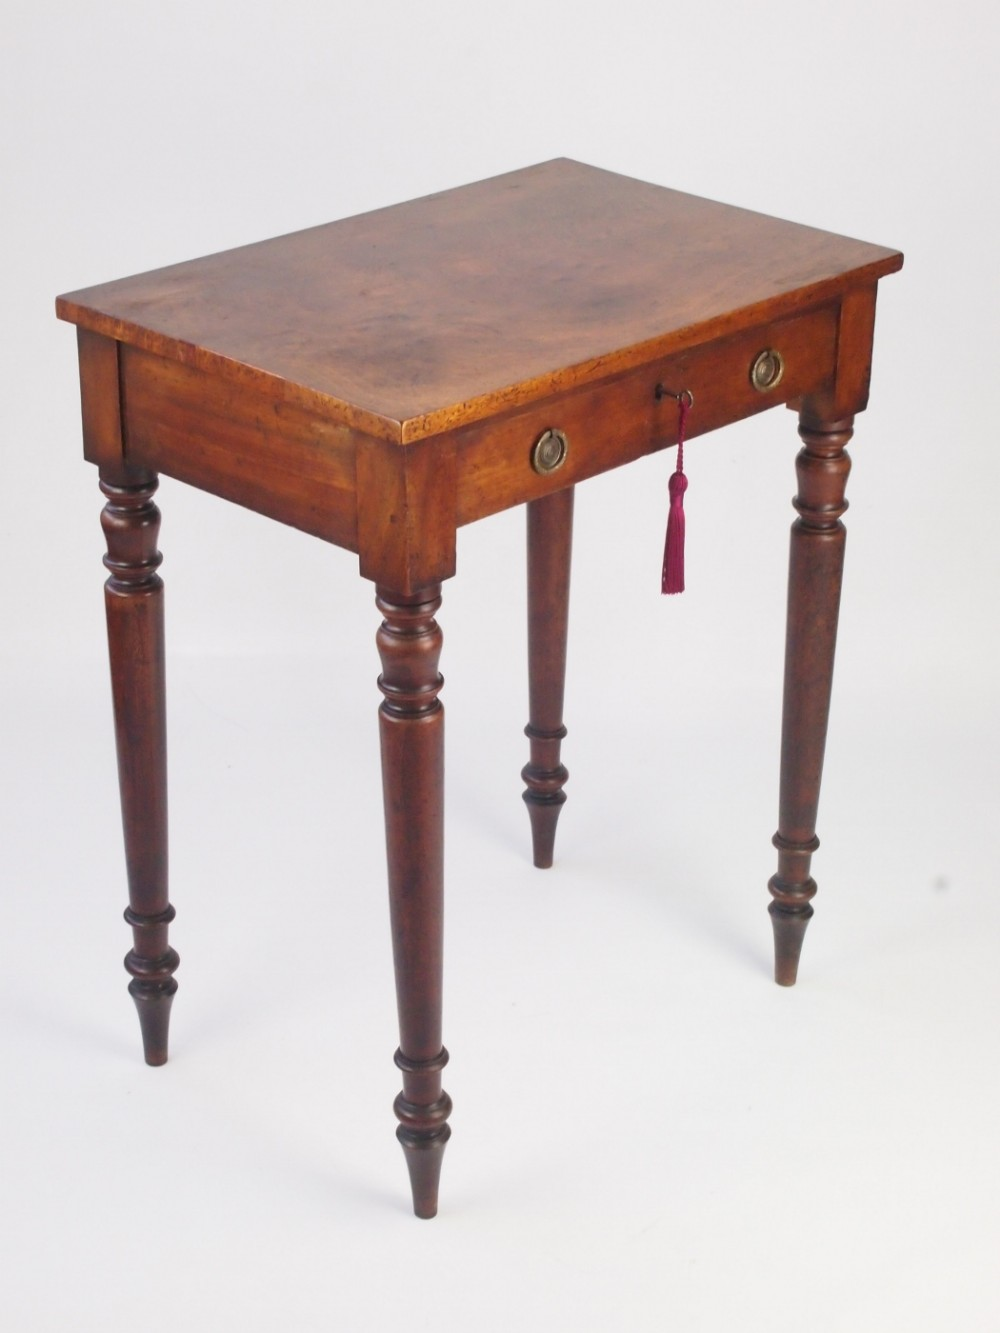 small antique victorian writing desk side table - Small Antique Victorian Writing Desk - Side Table 314143